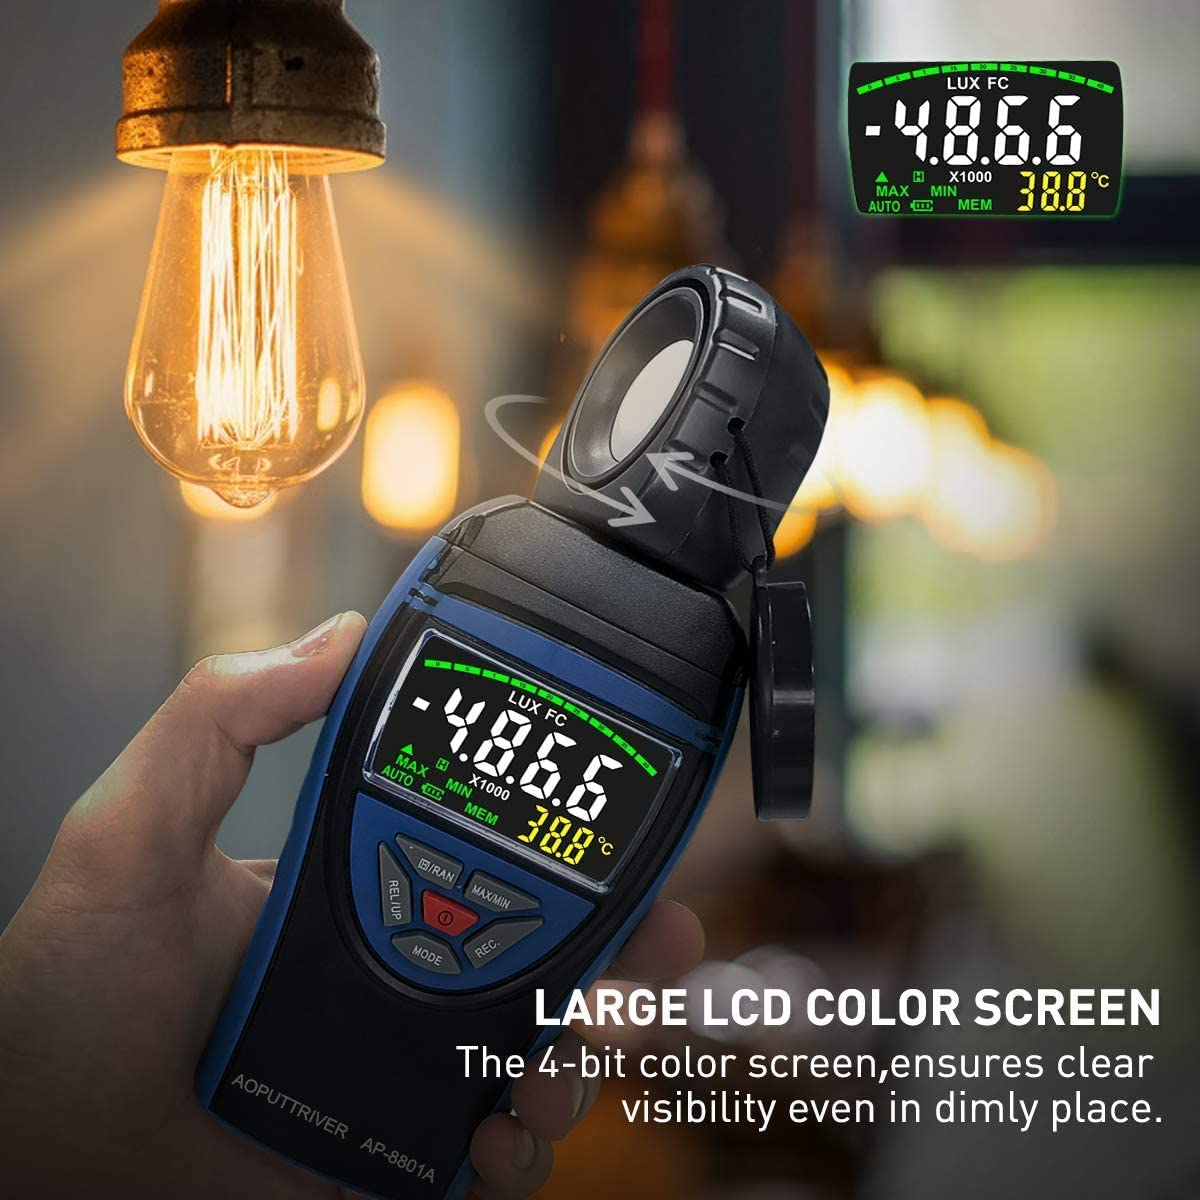 Digital Illuminance//Light Meter AP-8801C Light Meter for Photography Measure Light 0.1~400,000 Lux with Extendable Light Detector up to 2m Data Hold Lux//FC Selection for Par Photography Plants